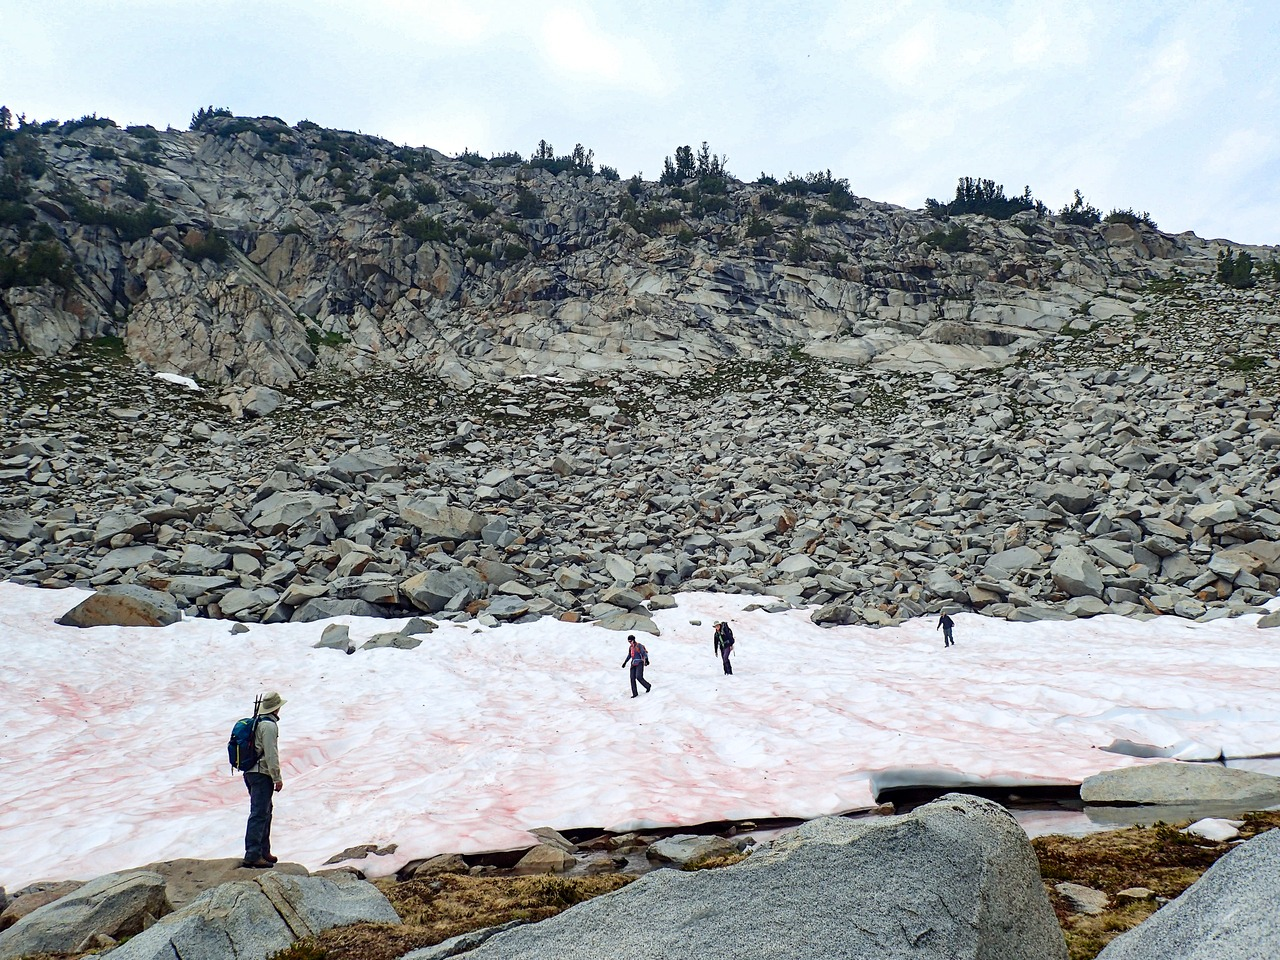 A group of hikers crosses a snow field on a high, rocky slope in the eastern Sierra Nevada. The snow is streaked with pink patches of algae.